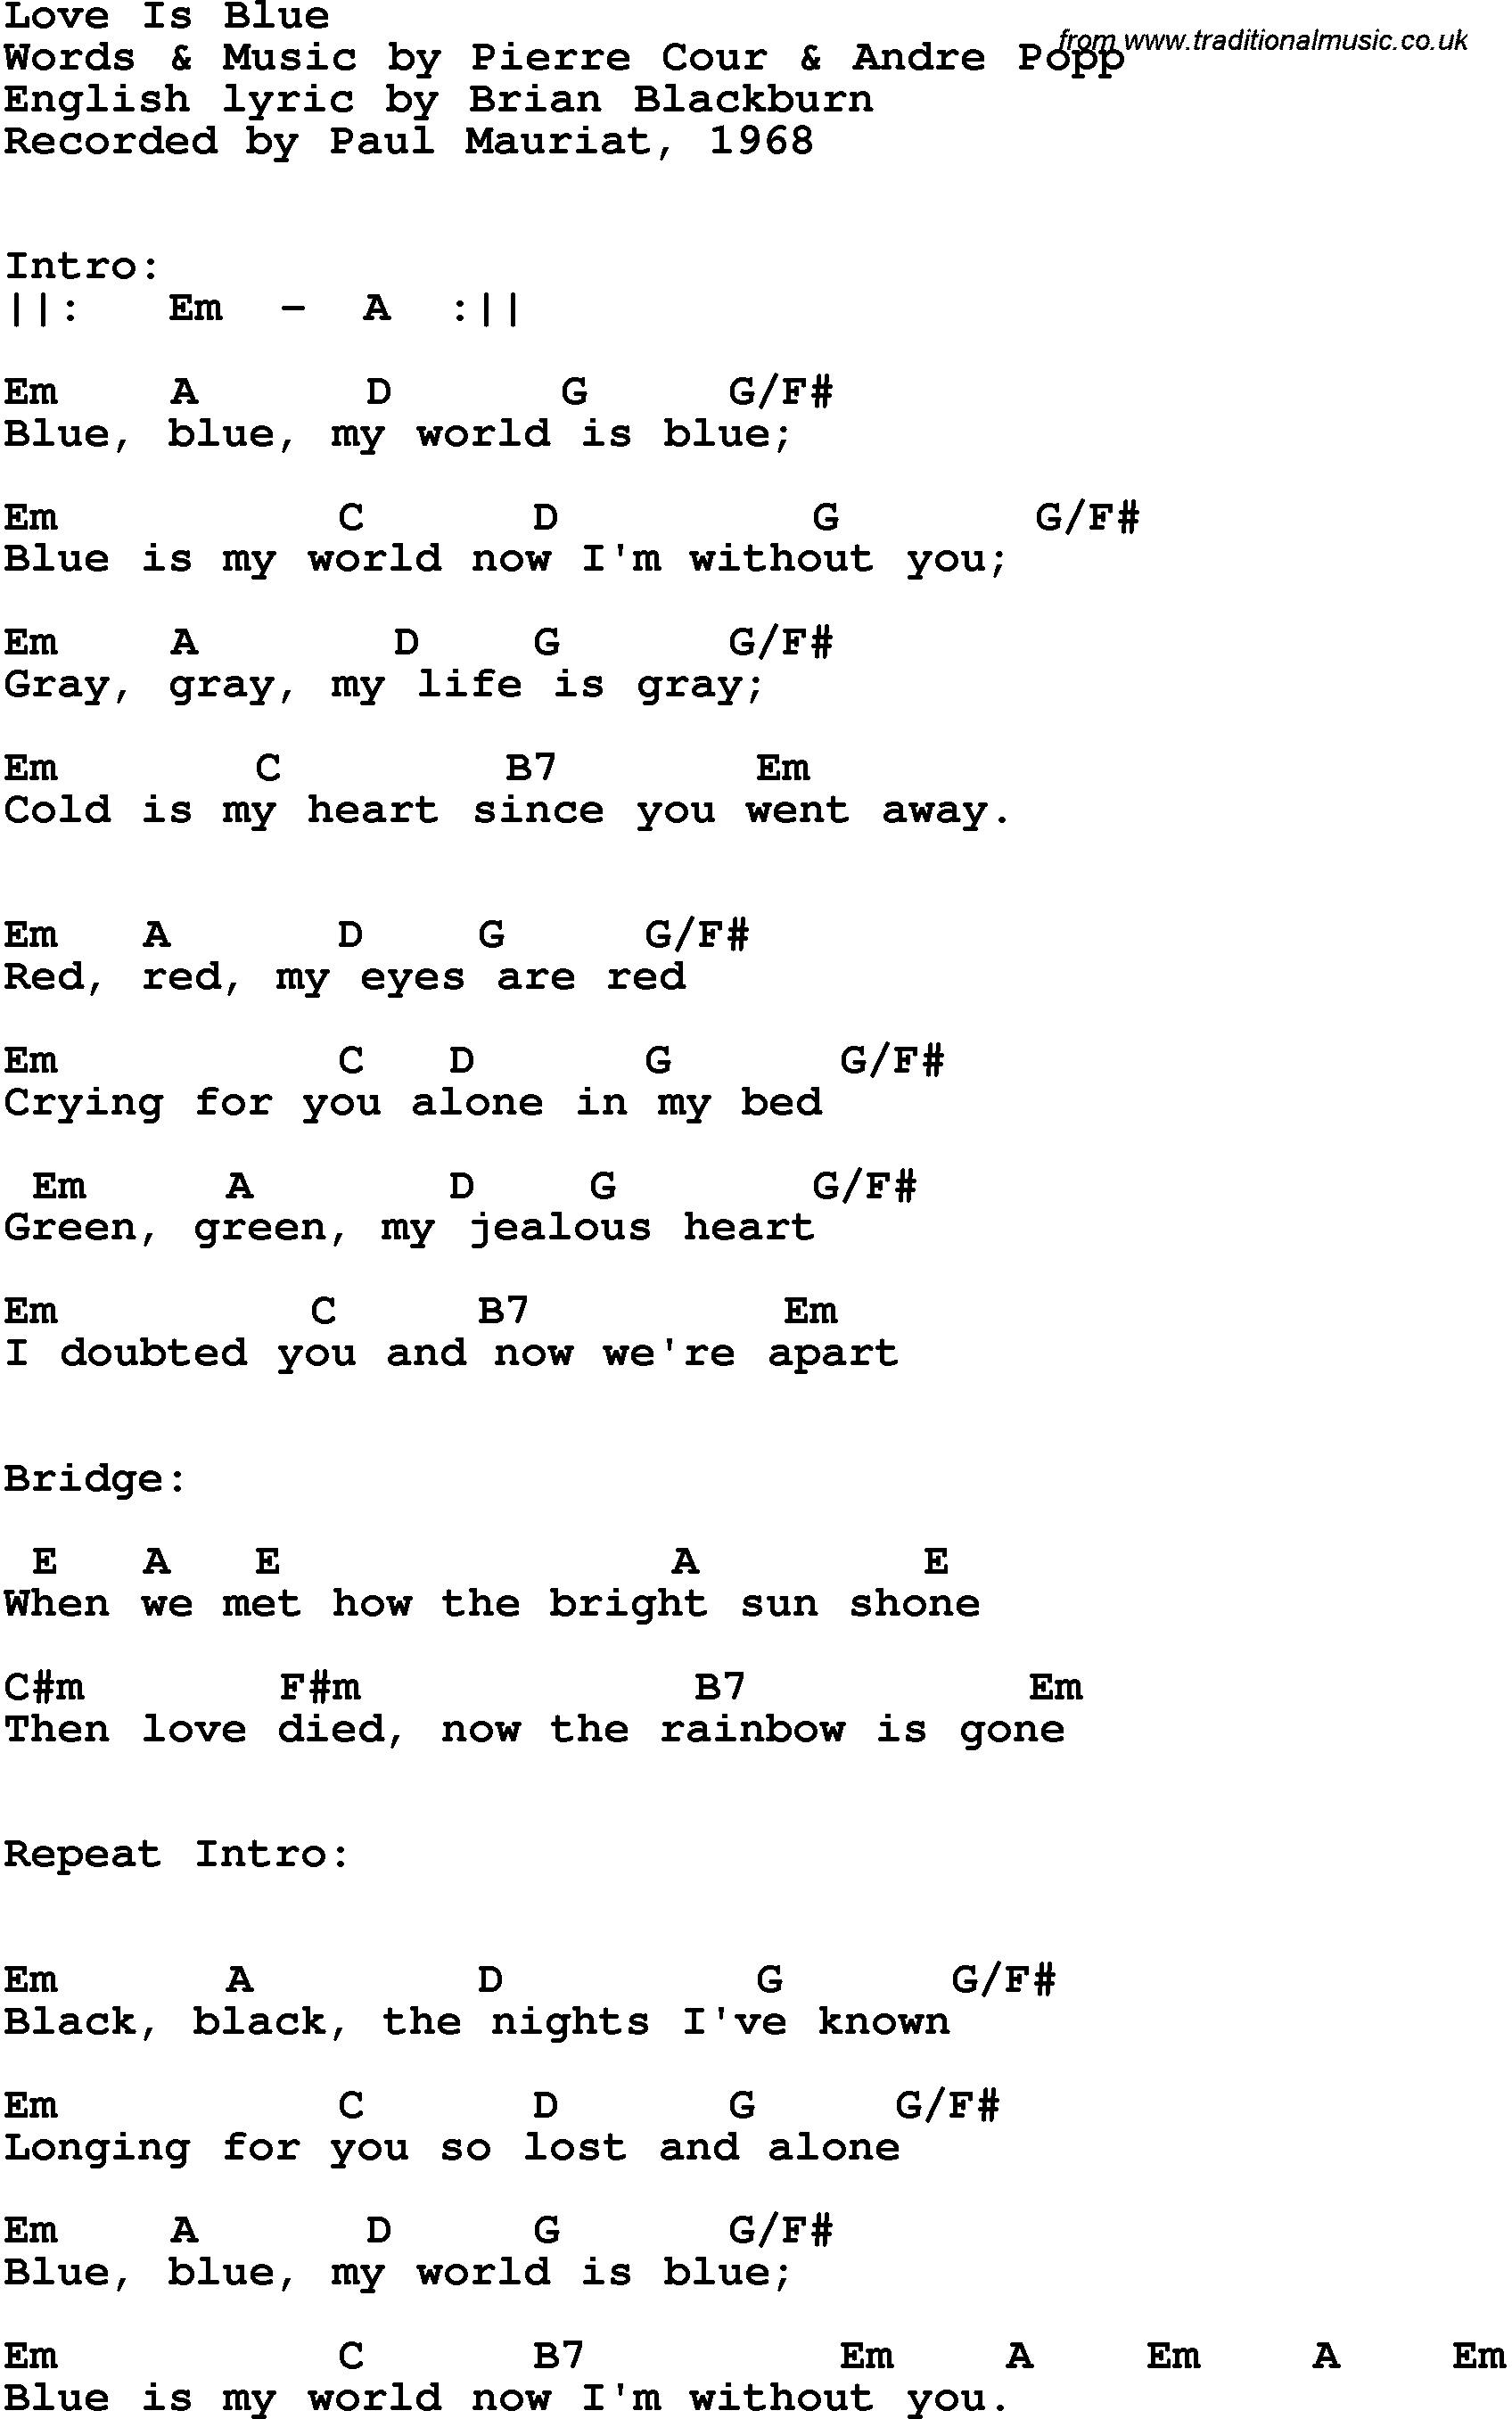 Song lyrics with guitar chords for love is blue paul mauriat 1968 song lyrics with guitar chords for love is blue paul mauriat 1968 hexwebz Images